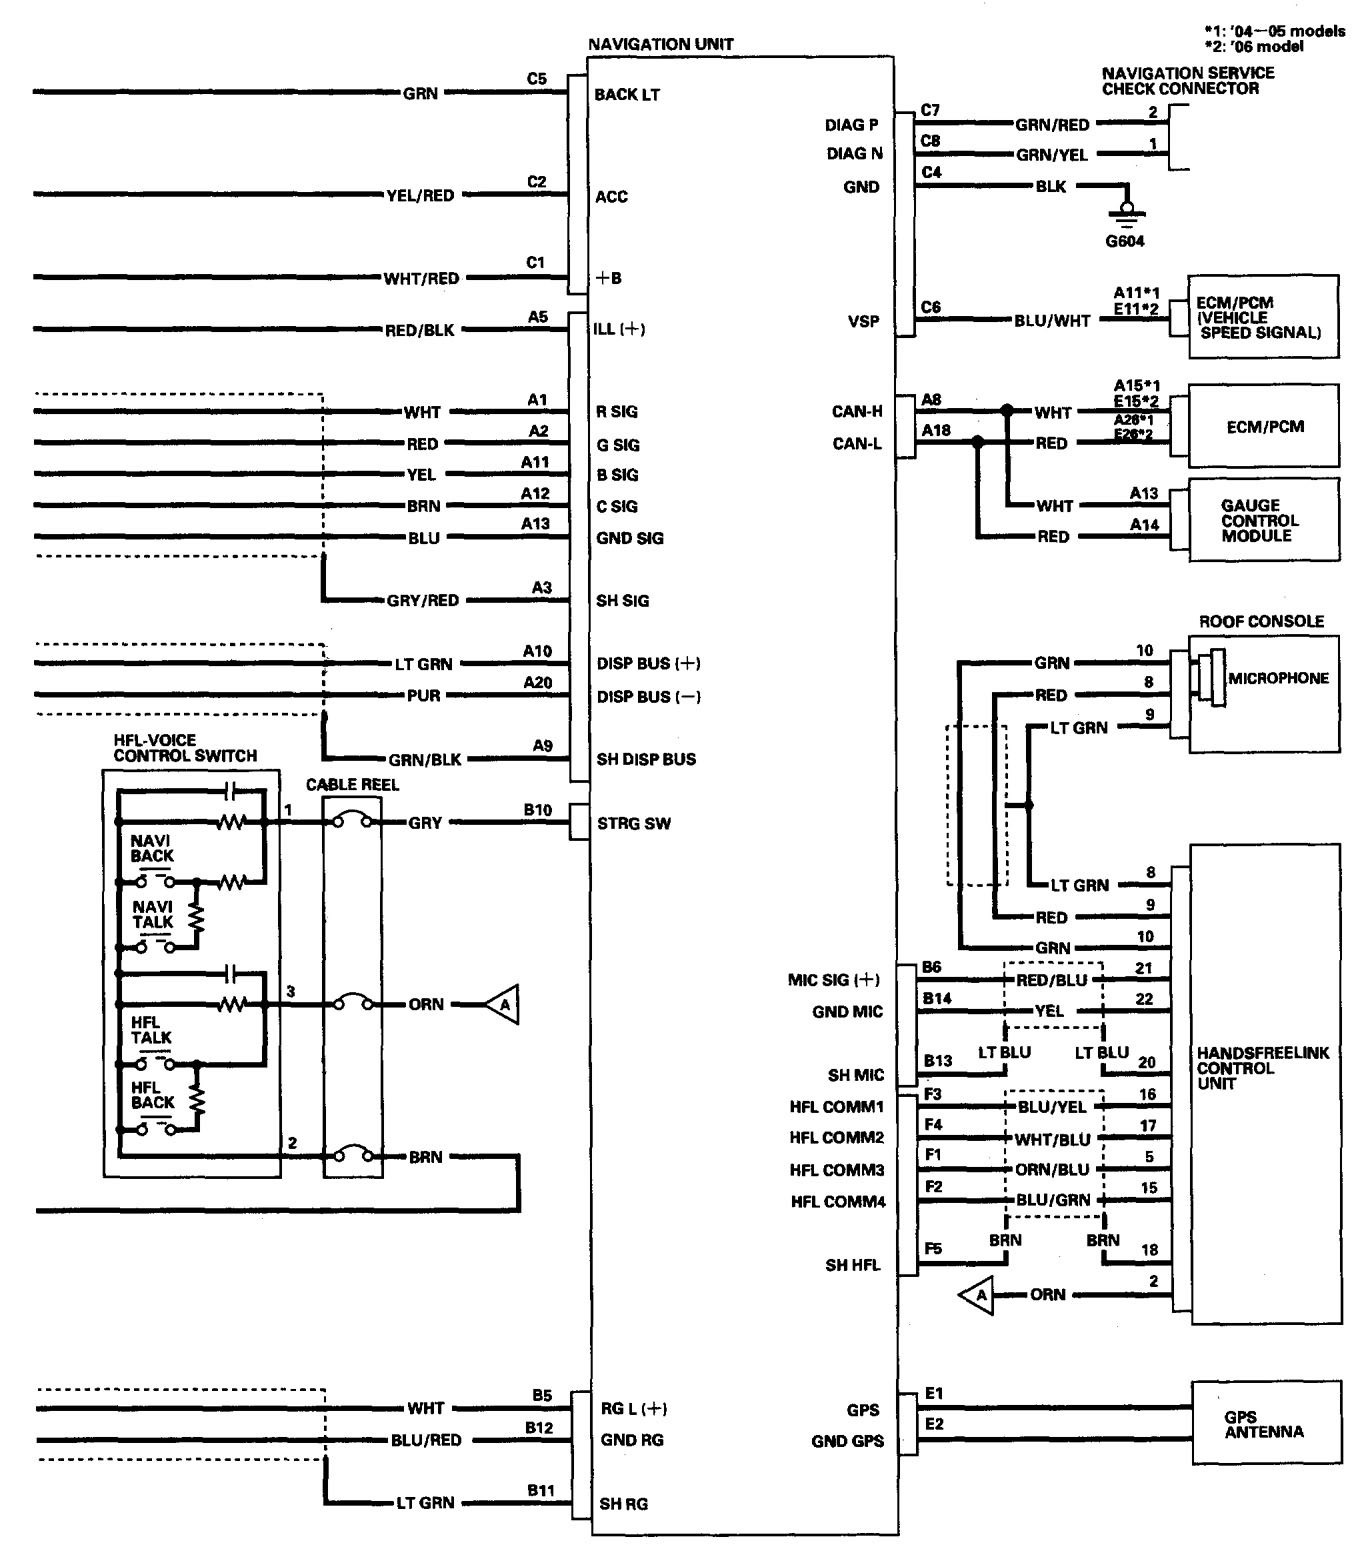 1998 Acura 3 2 Tl Wiring Schematic - Diagram Of Fuses For 2008 528i for Wiring  Diagram Schematics | 1998 Acura 3 2 Tl Wiring Schematic |  | Wiring Diagram Schematics